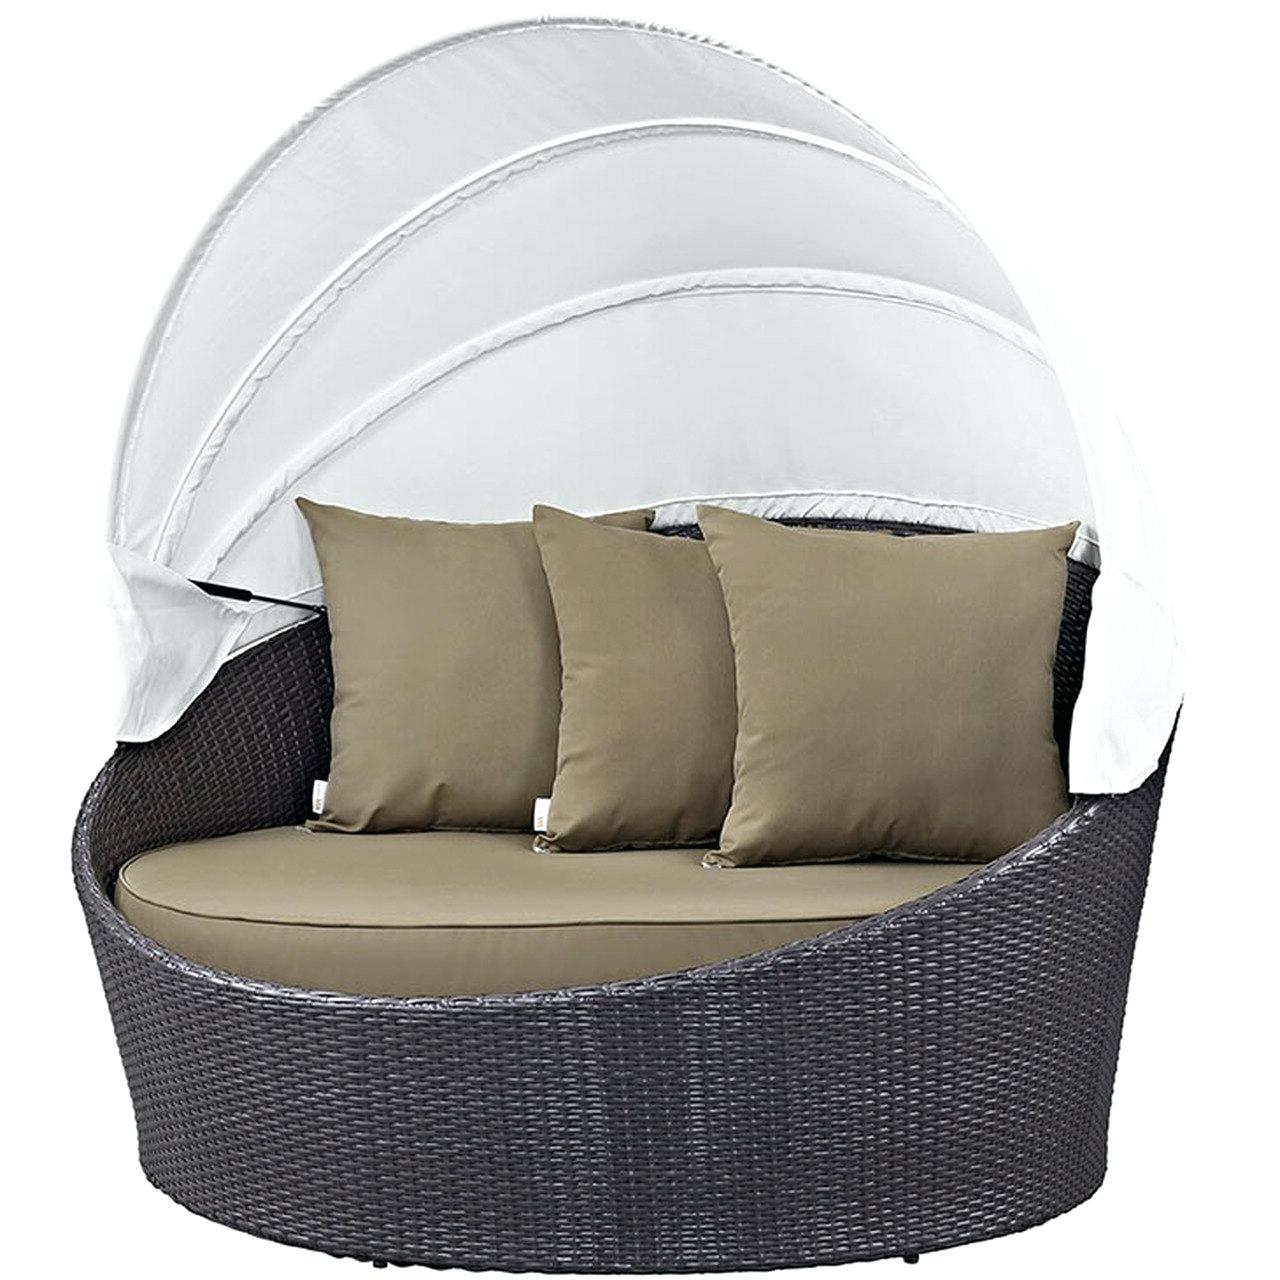 Widely Used Patio Daybed – Digandfish.co With Ellanti Patio Daybeds With Cushions (Gallery 5 of 25)